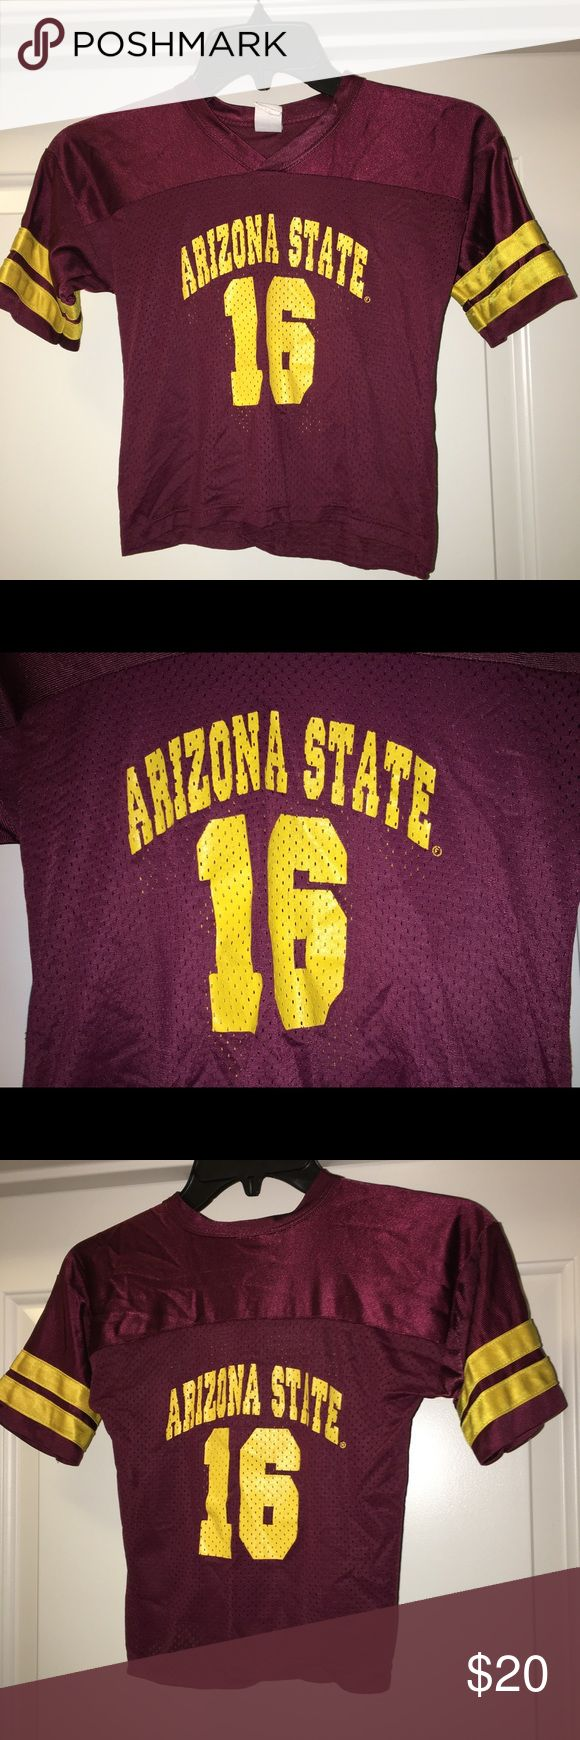 "ASU Sun Devils Jake Plummer toddler jersey SZ: 4 Thank you for viewing my listing, for sale is a youth, Arizona State University, Jake Plummer, toddler football jersey Sz: 4  If you have any questions or would like additional photos please feel free to ask.  From under one arm to under the other measures appx 15"" from the top of the shoulder to the bottom of the Jersey measures appx 17"" little king Shirts & Tops"